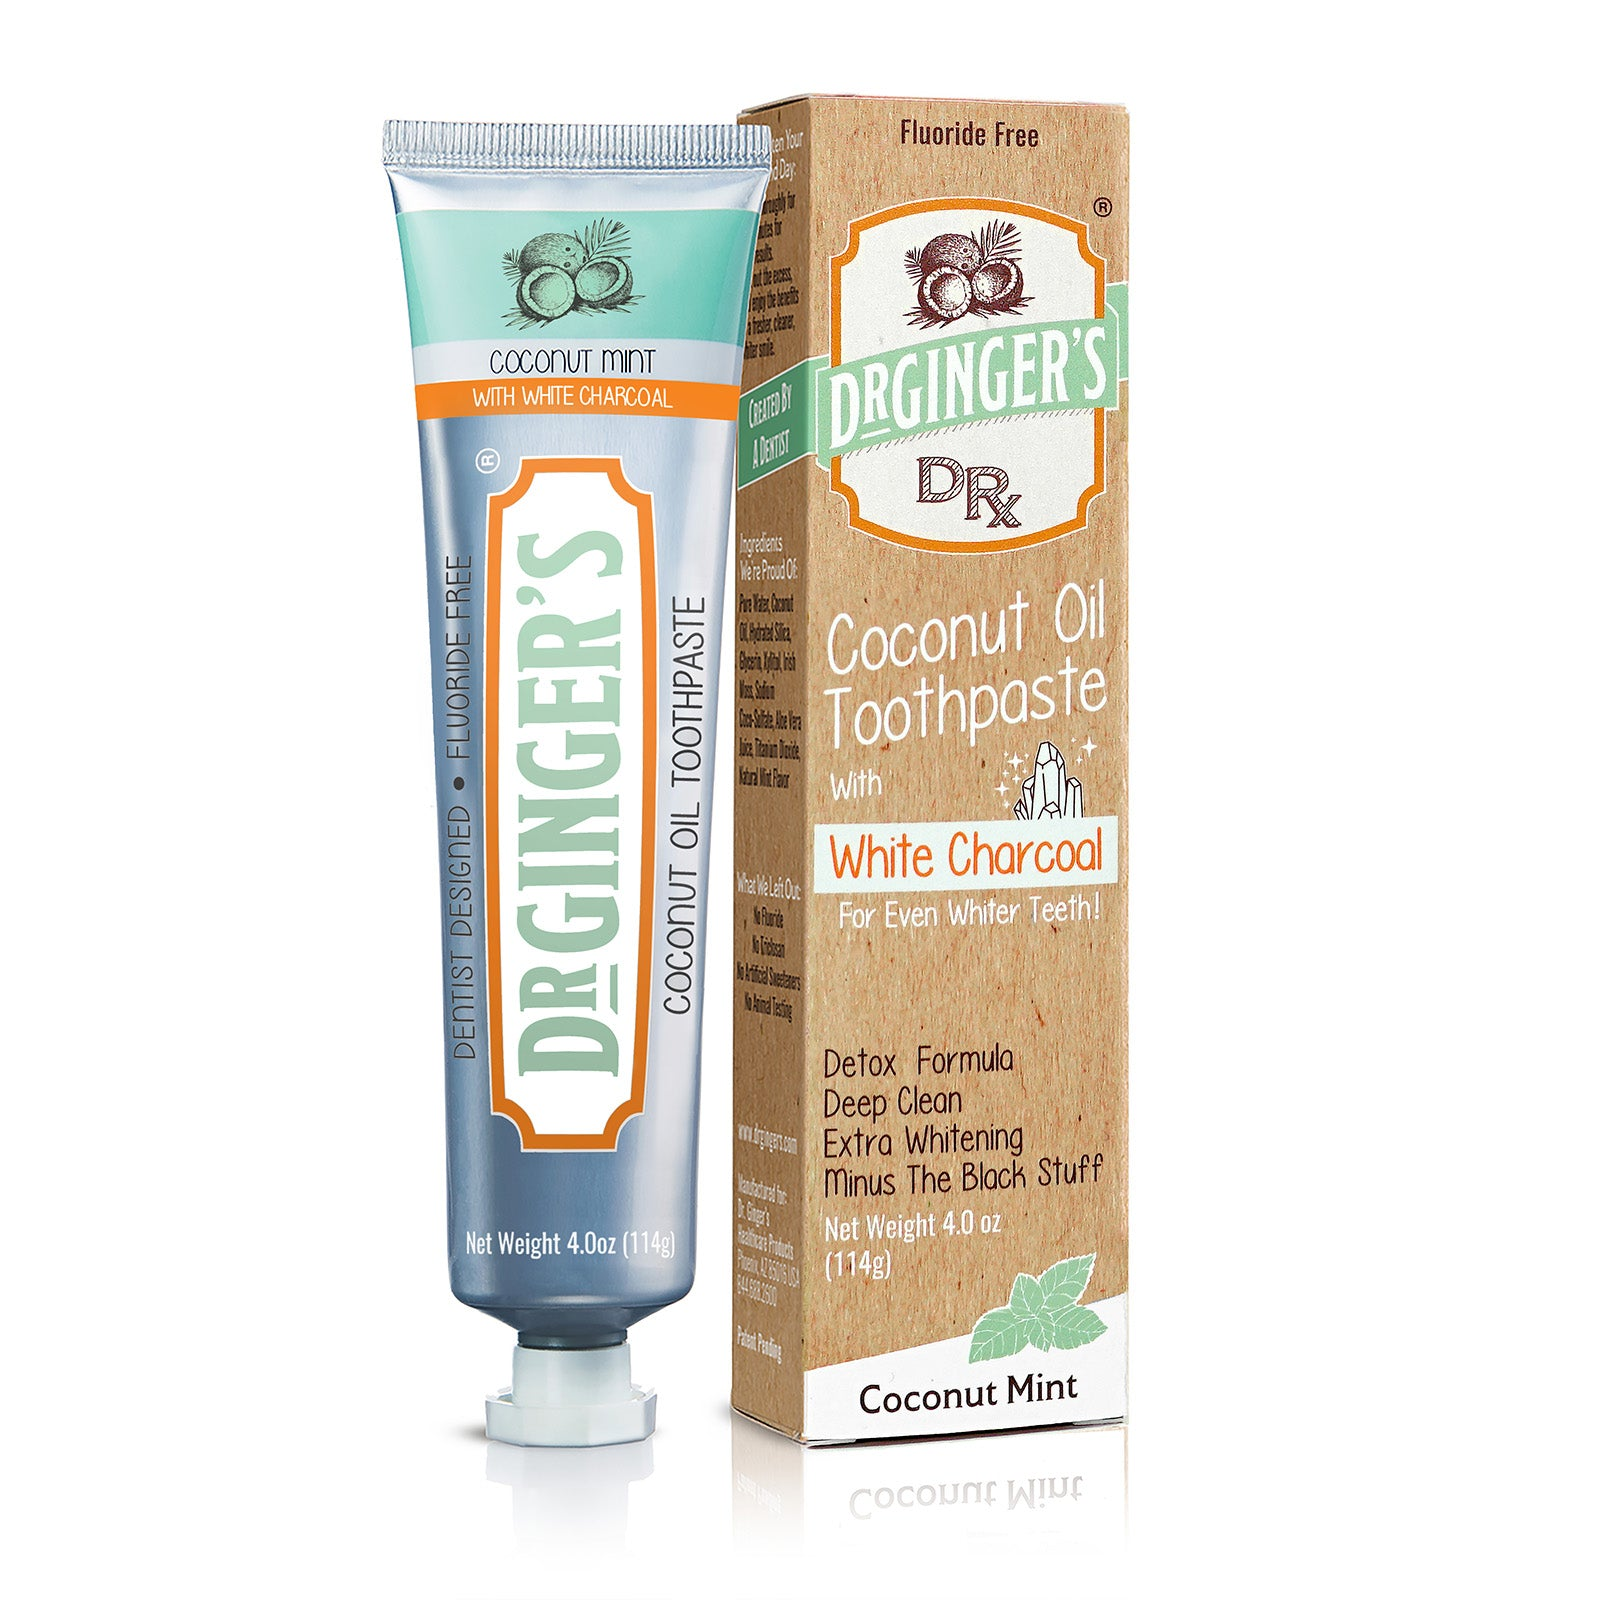 Dr. Ginger's White Charcoal Toothpaste, Tube and Box